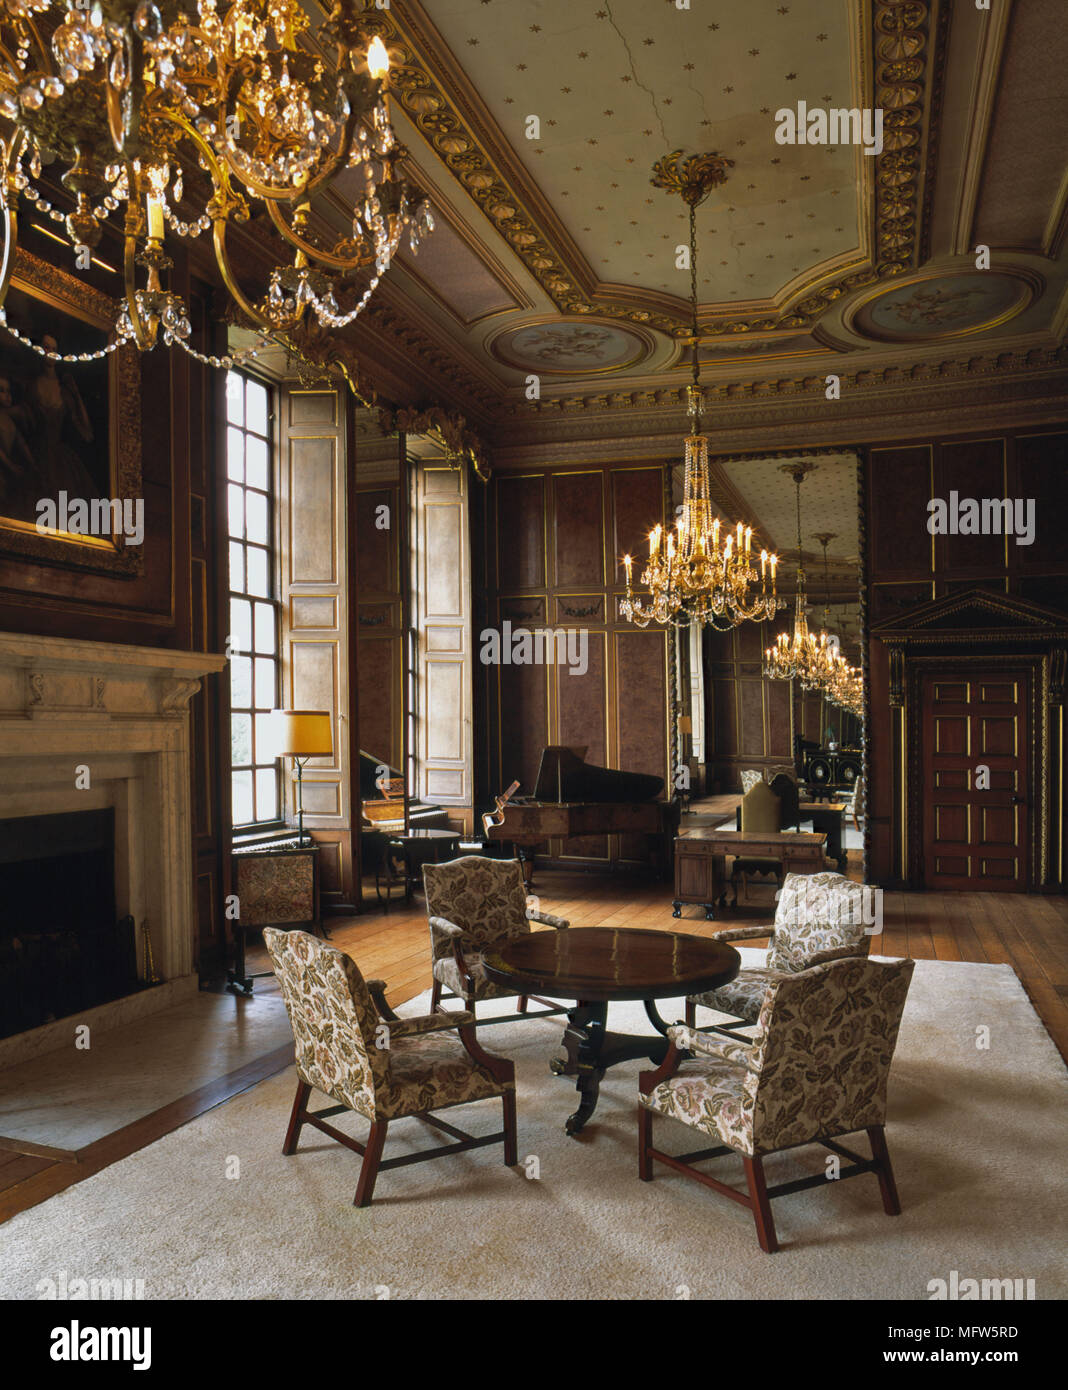 A Traditional Grand Drawing Room Ornate Ceiling Wood